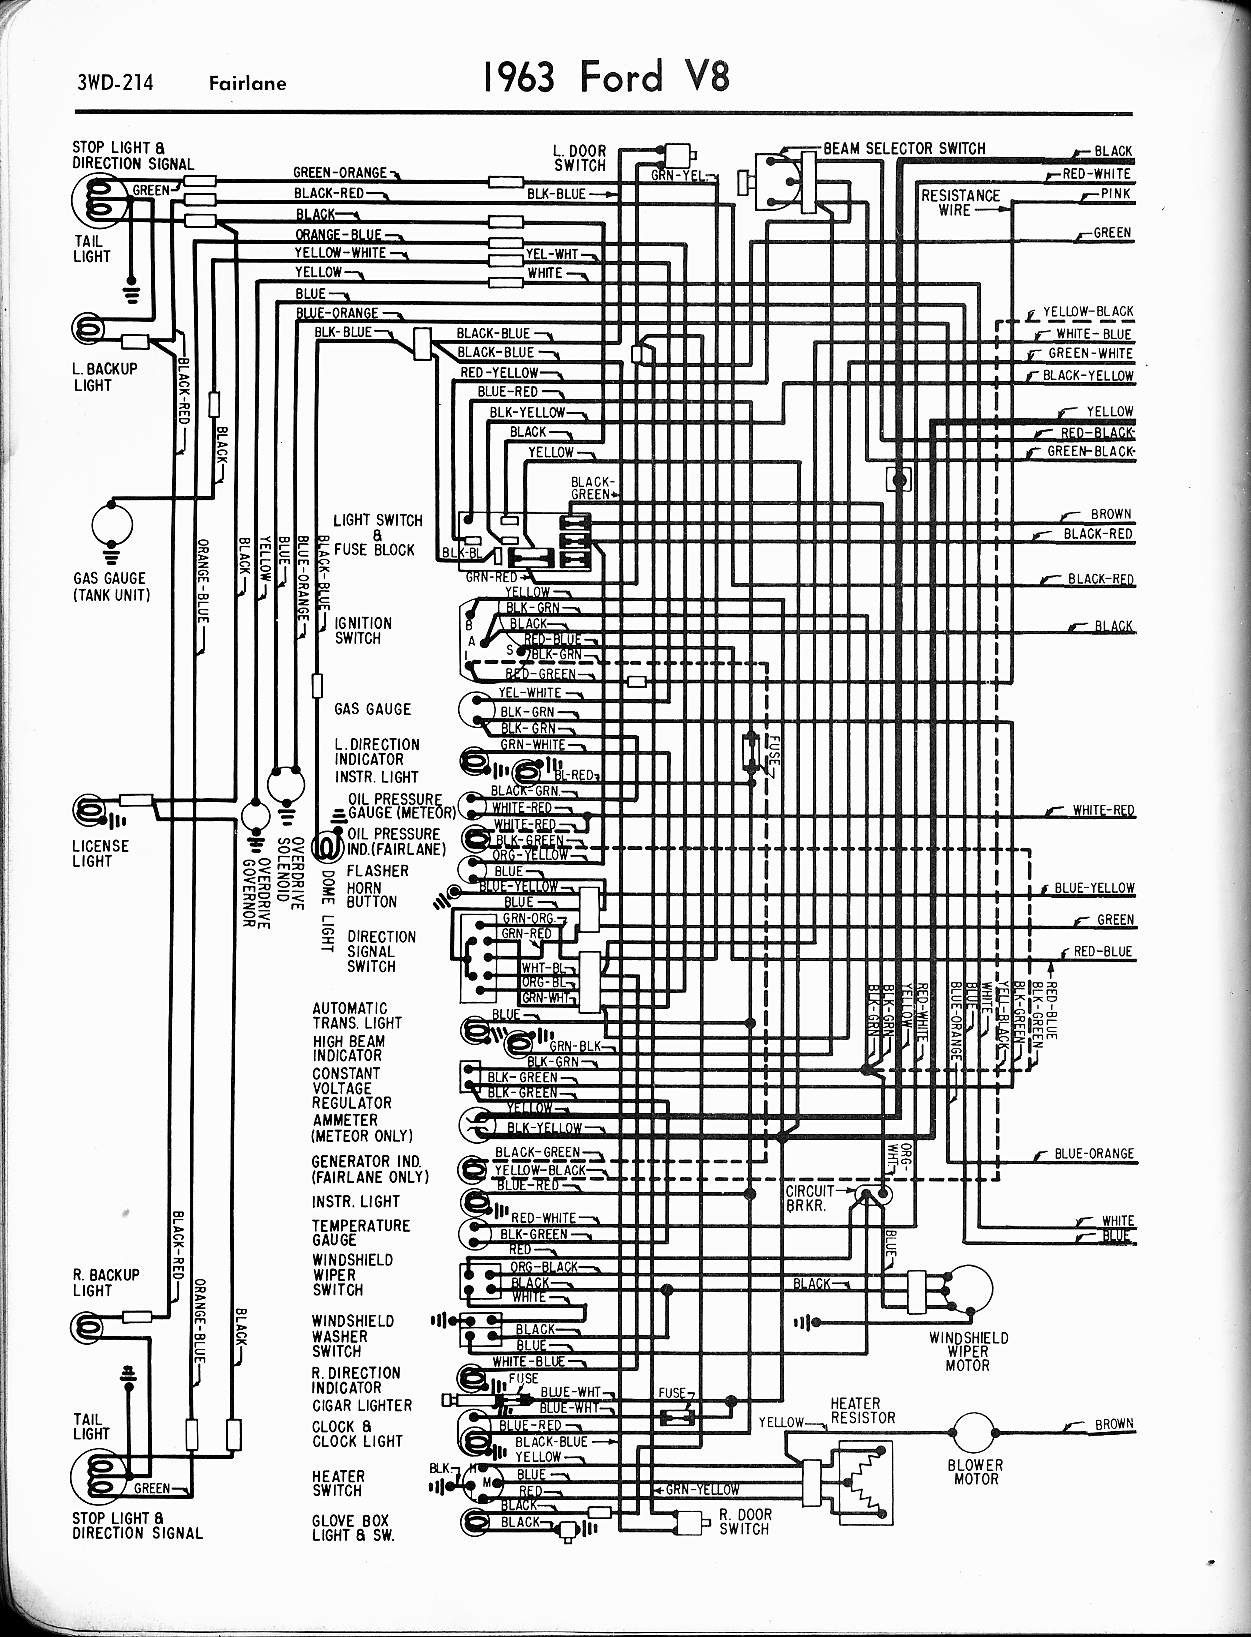 1963 ford van wiring diagram - wiring diagram schematic loot-total-a -  loot-total-a.aliceviola.it  aliceviola.it